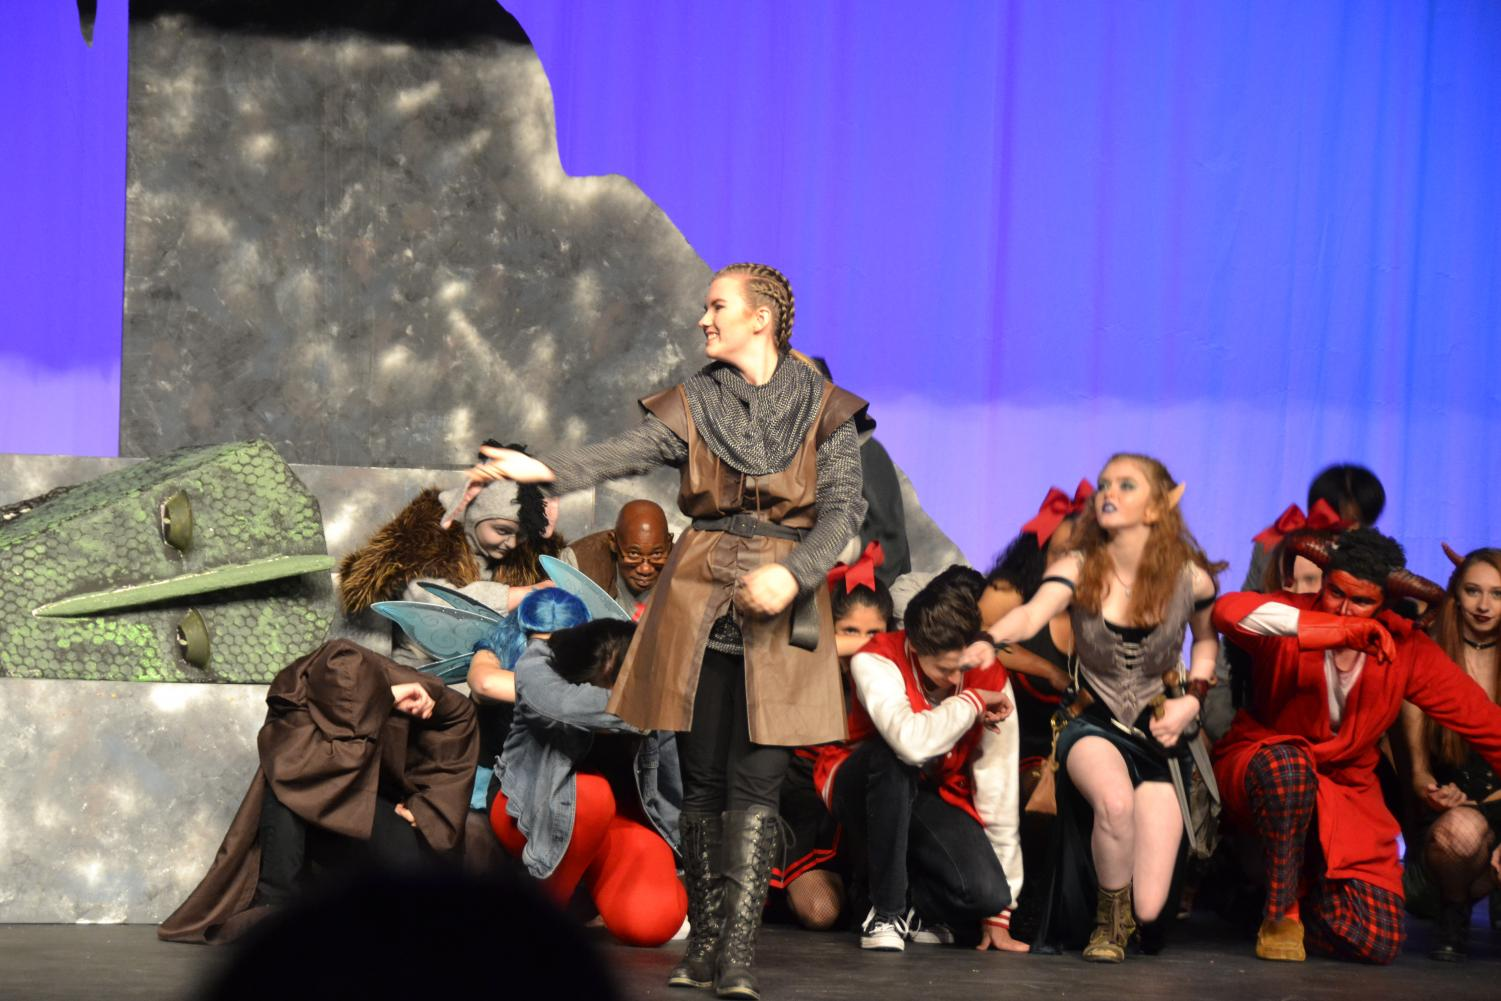 Lead+character%2C+Tillius+aka+junior+Emily+Trachsel+takes+her+bow+and+then+welcomes+her+sister+on+to+the+stage+with+her.